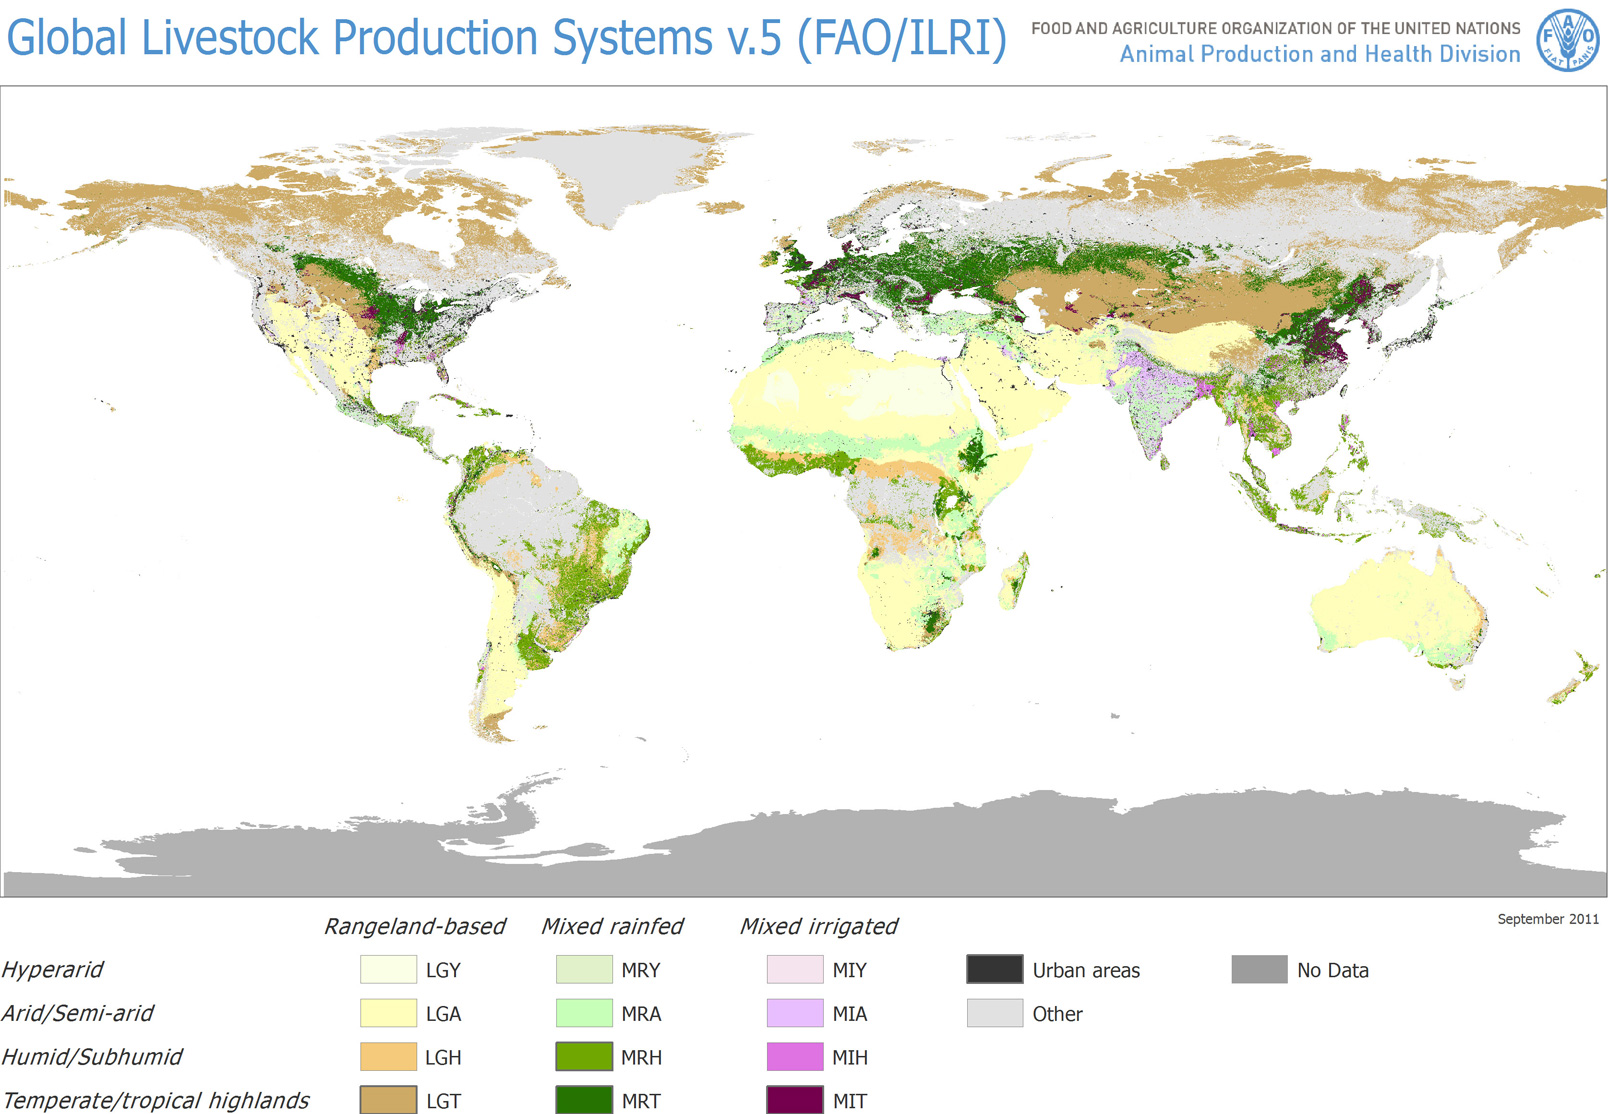 Agriculture World Map.Fao Ilri Global Livestock Production Systems In Rangelands Land